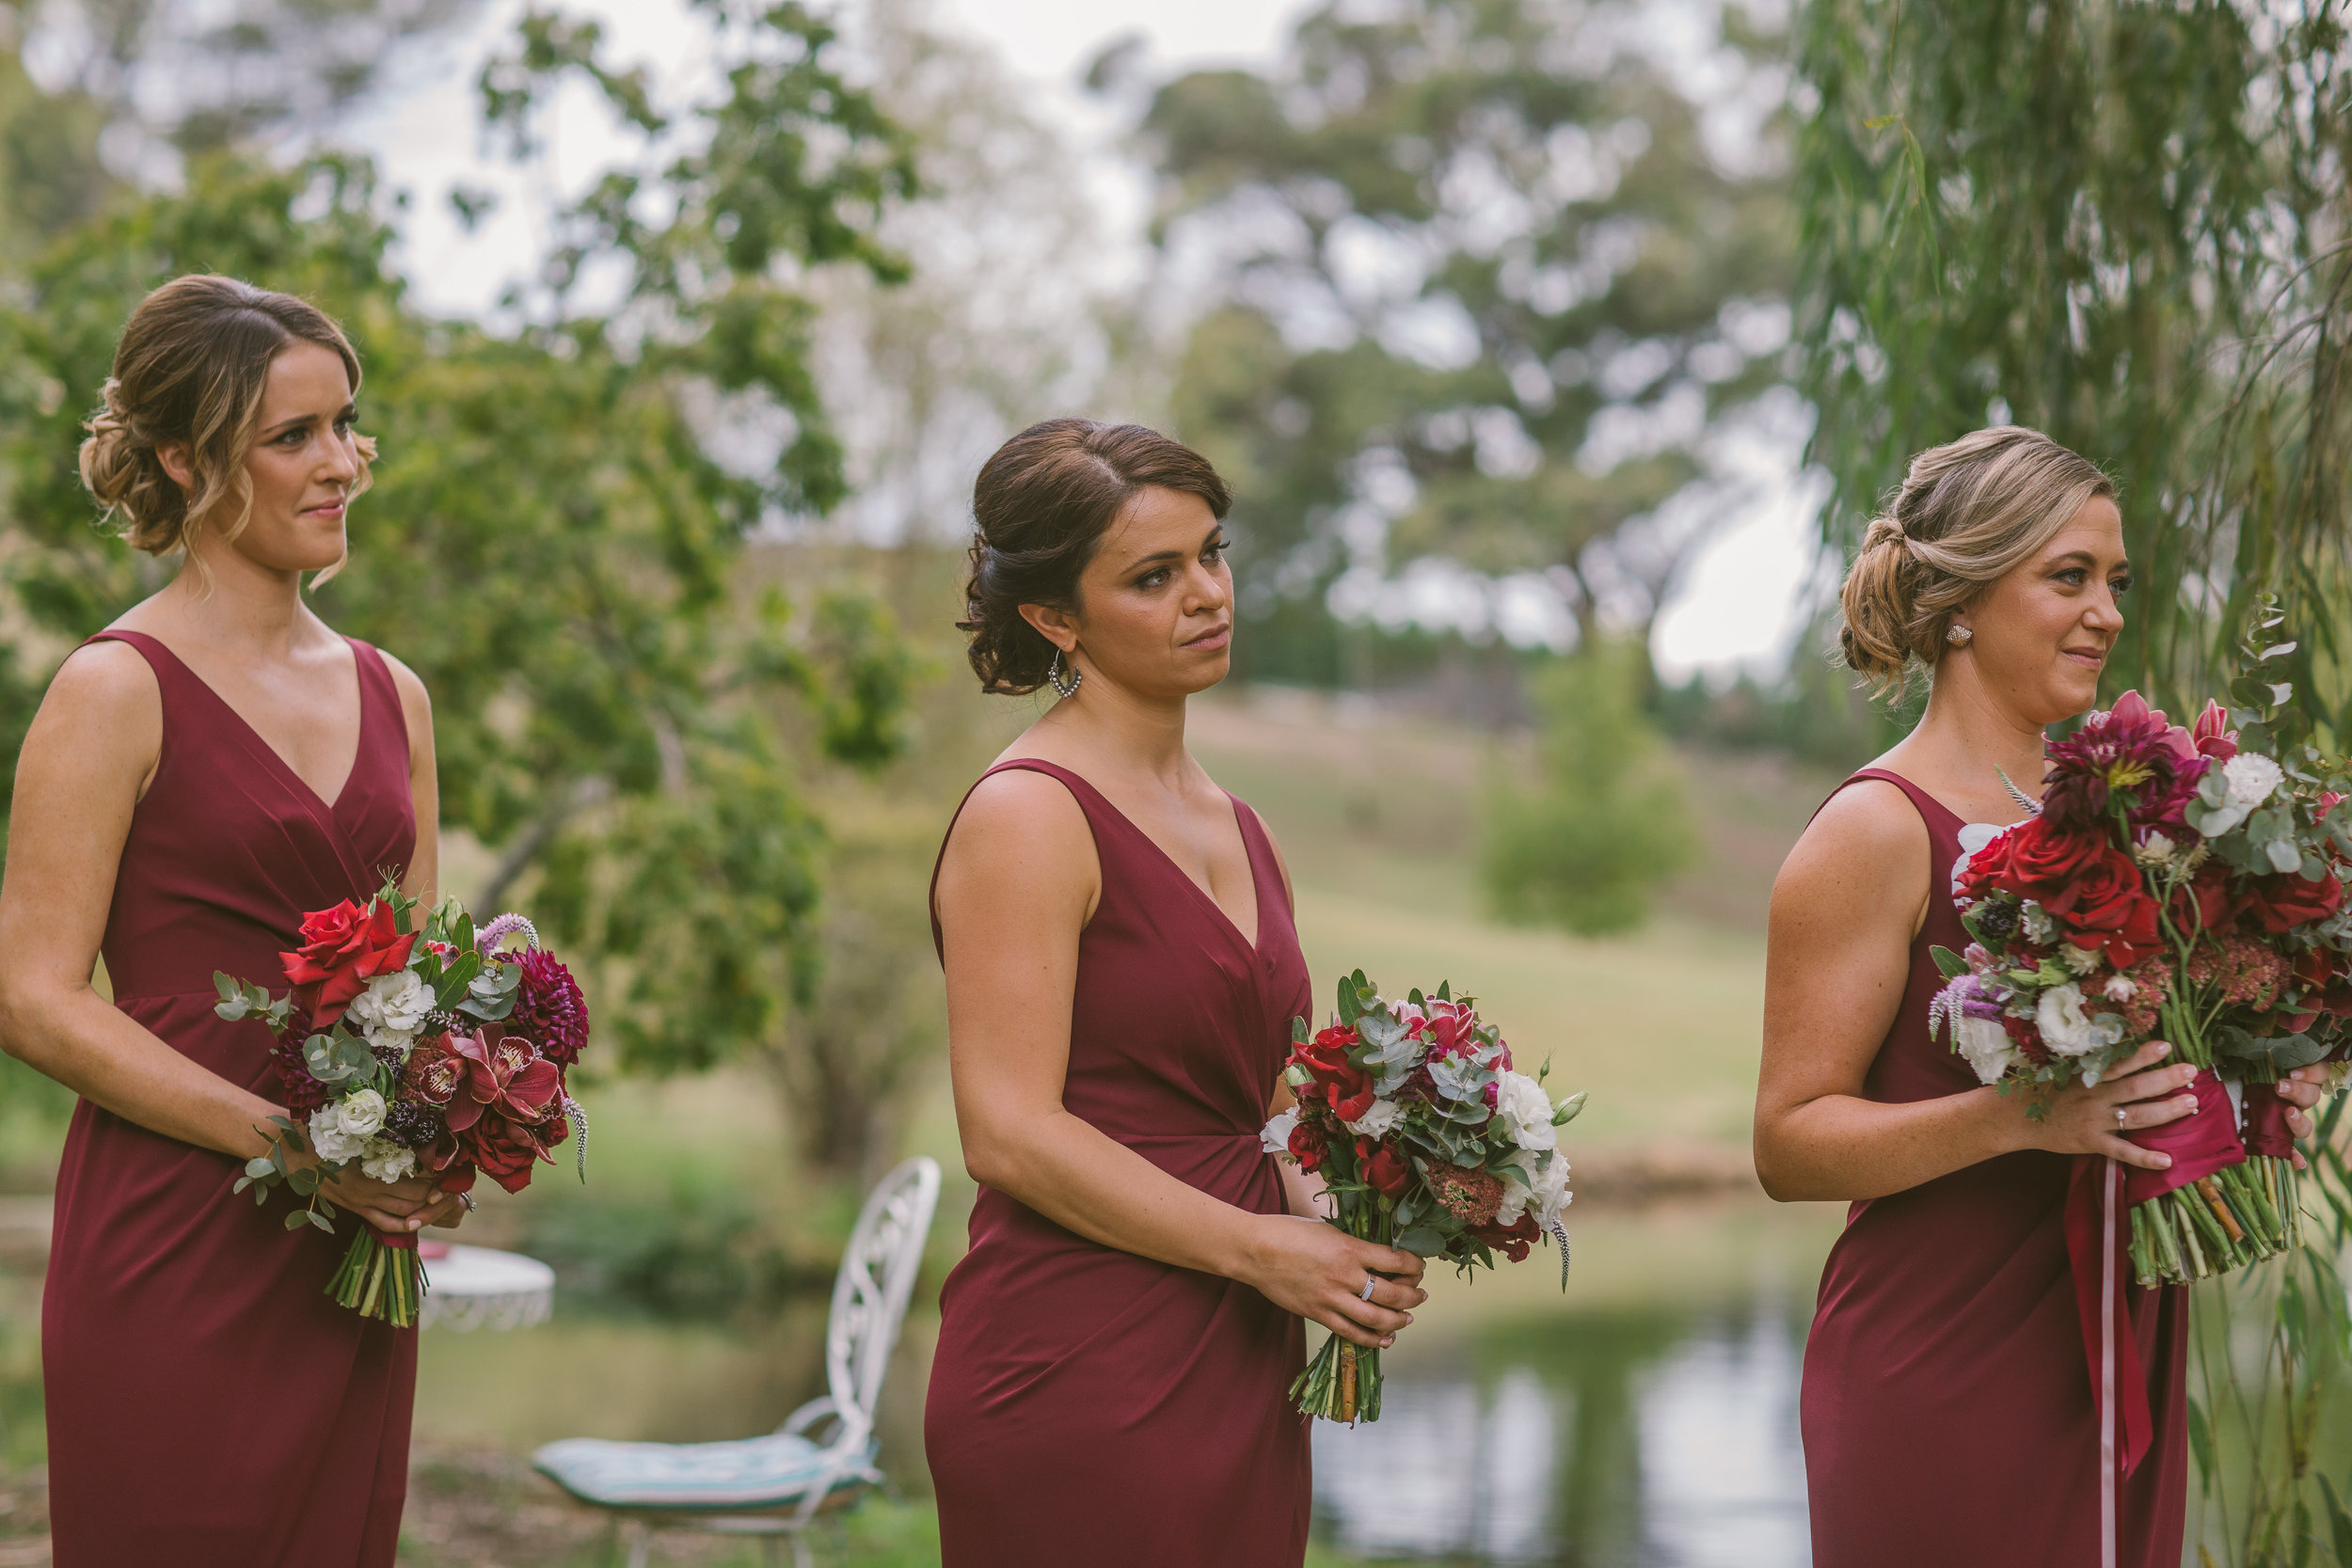 Sarah + Jason - Mali Brae Farm Wedding Photographer - Magnus Agren Photography-0307.jpg